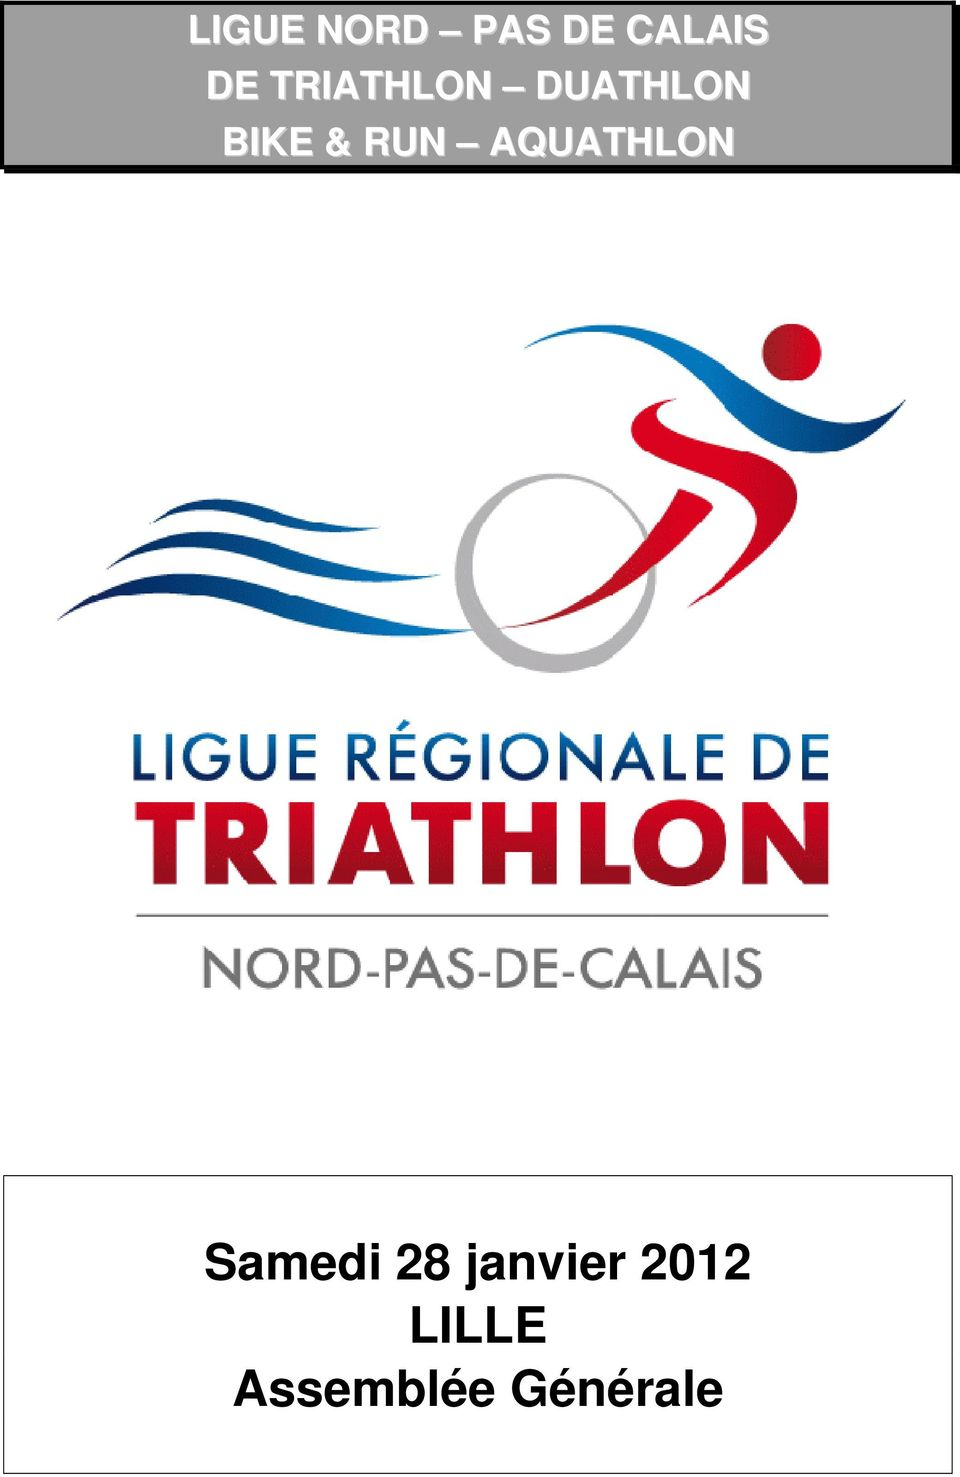 RUN AQUATHLON Samedi 28